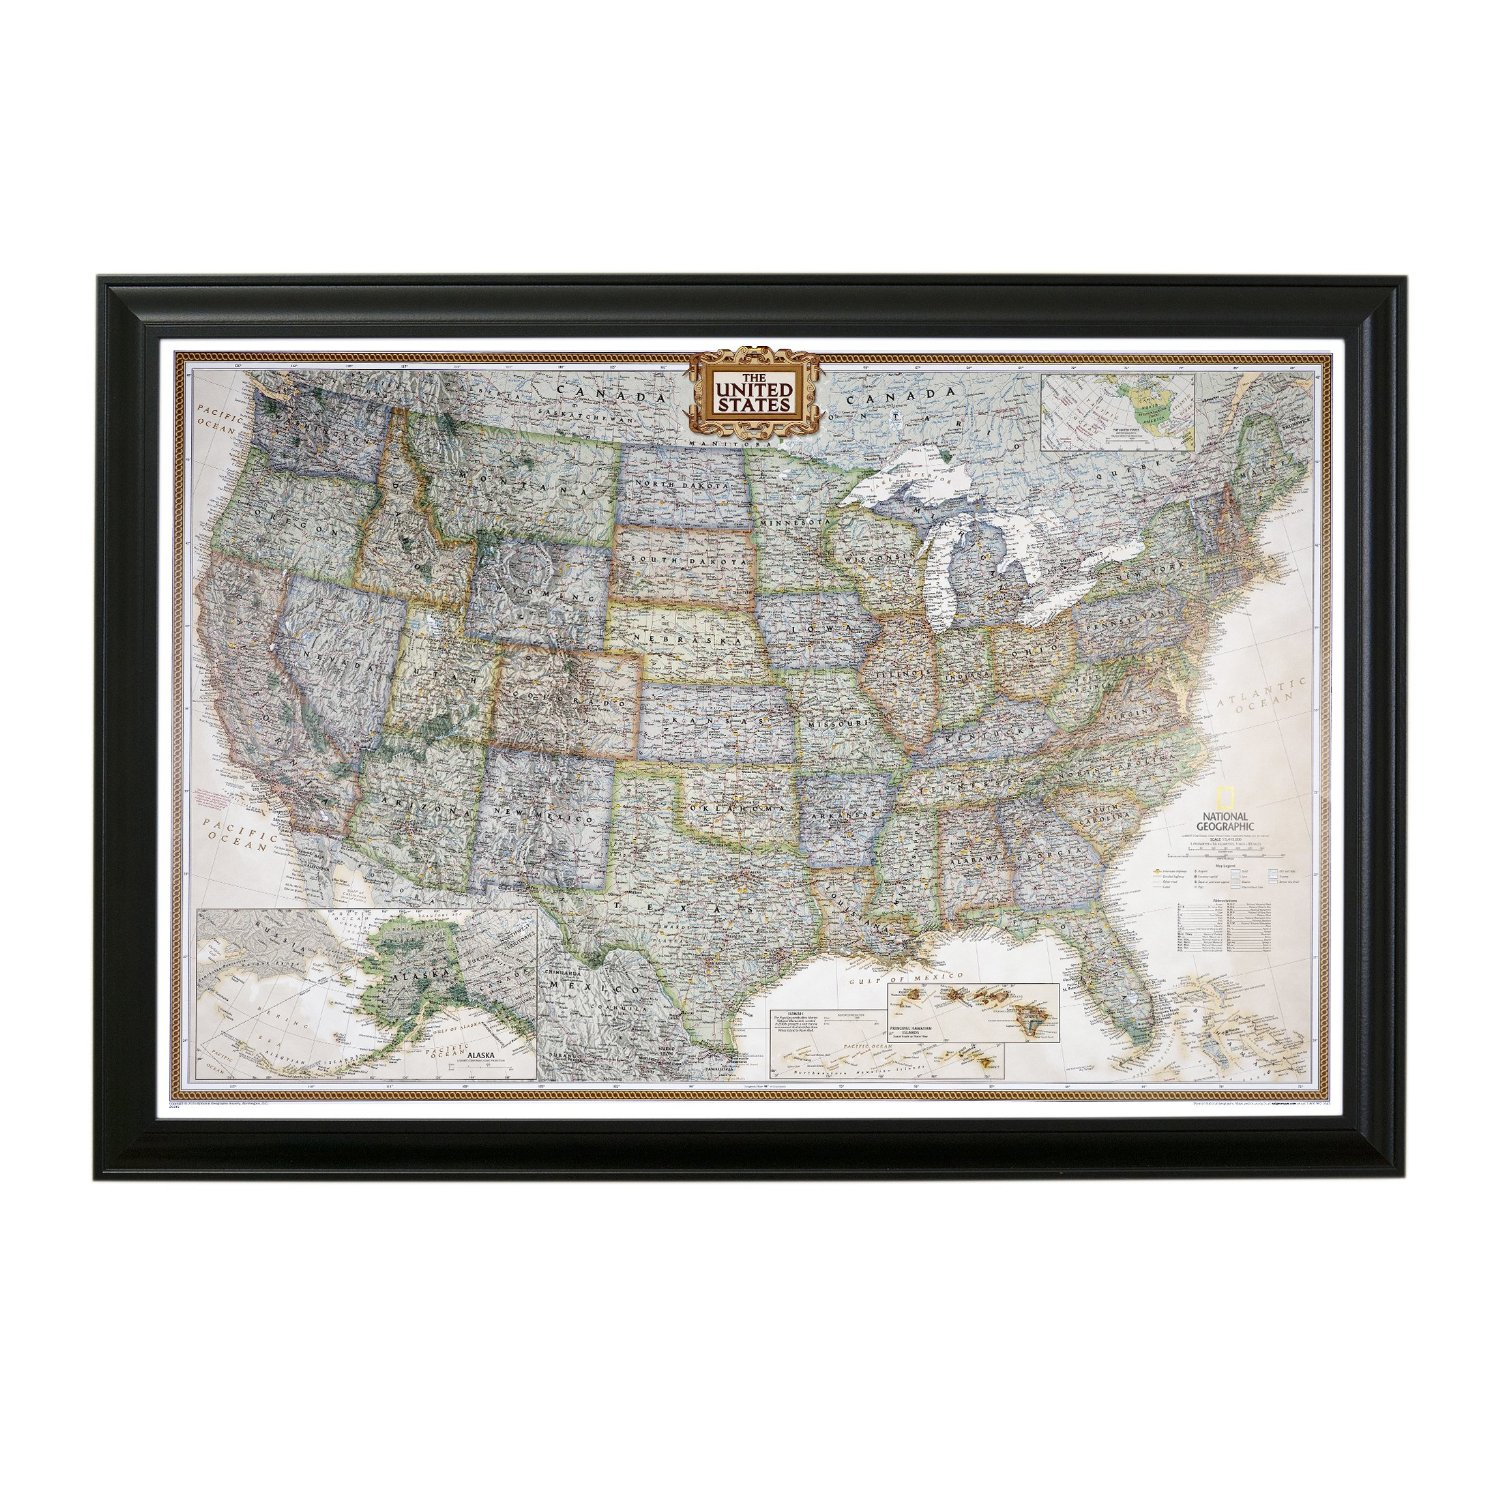 Cheap map black find map black deals on line at alibaba get quotations executive us push pin travel map with black frame and pins 24 x 36 gumiabroncs Gallery